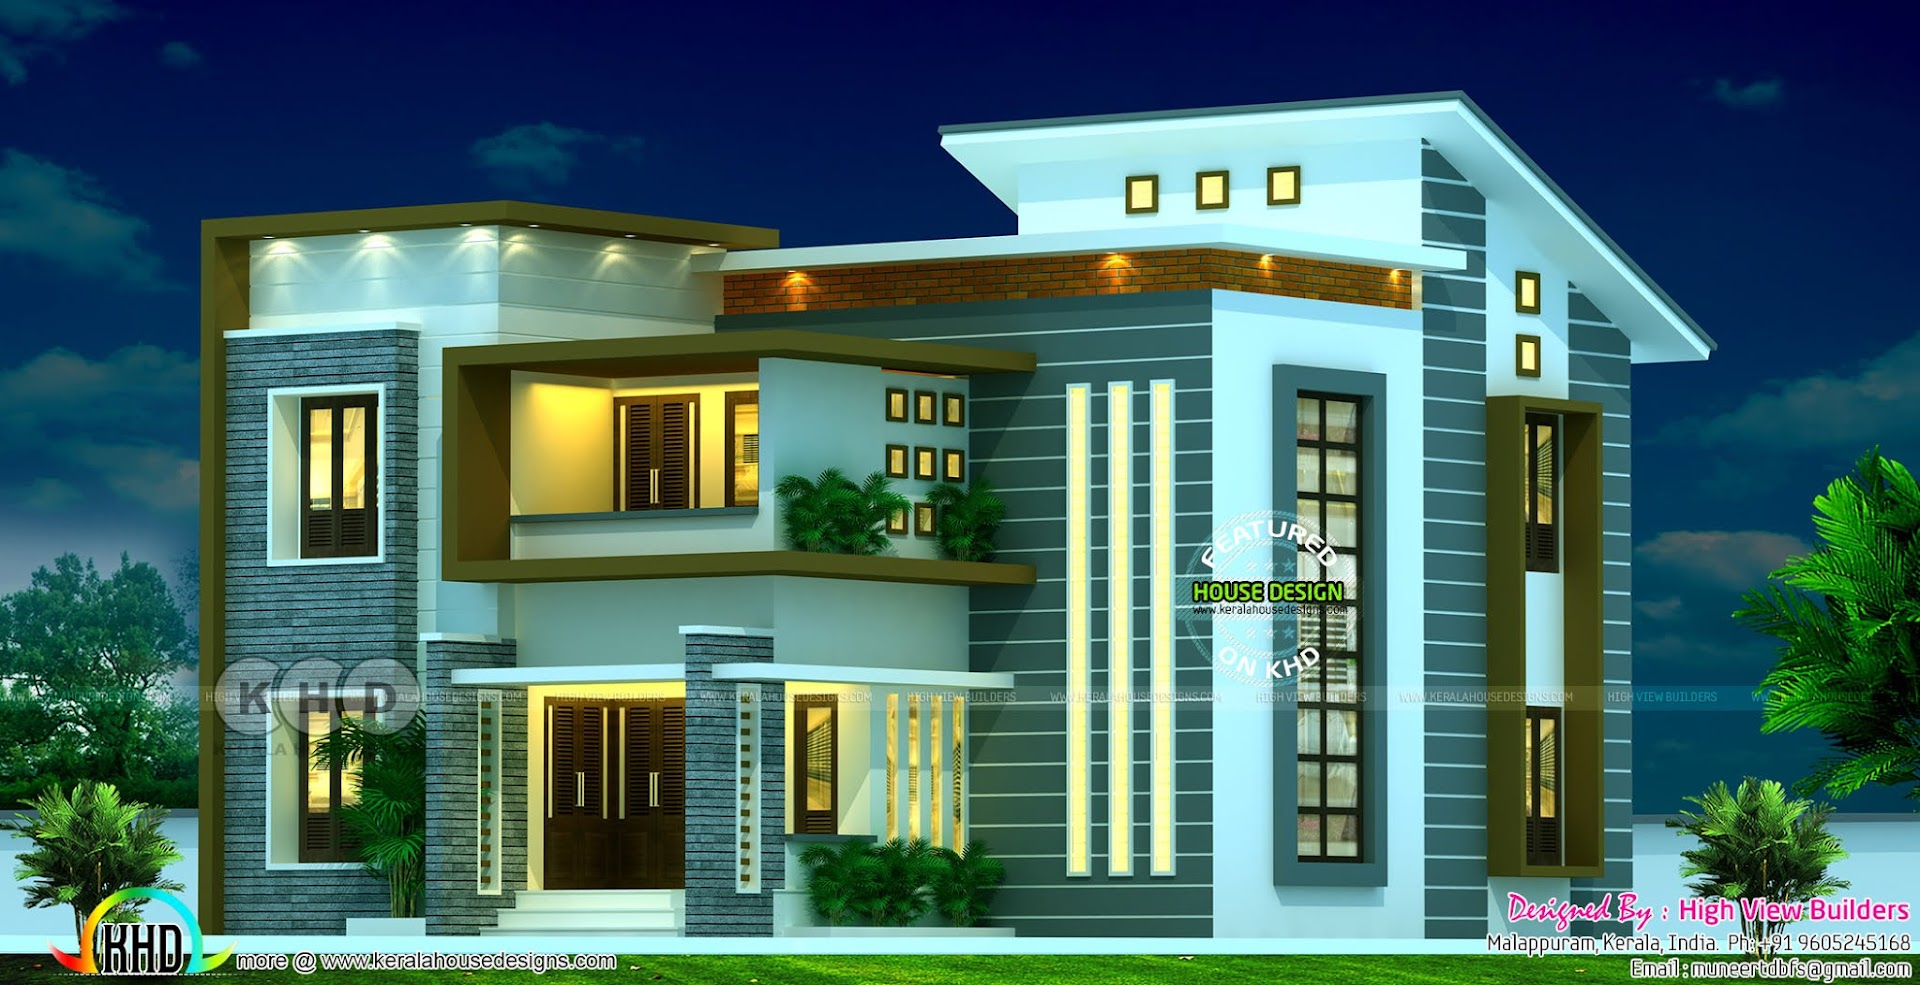 2340 Square Feet 4 Bedroom Slanting Roof Mix Modern Home